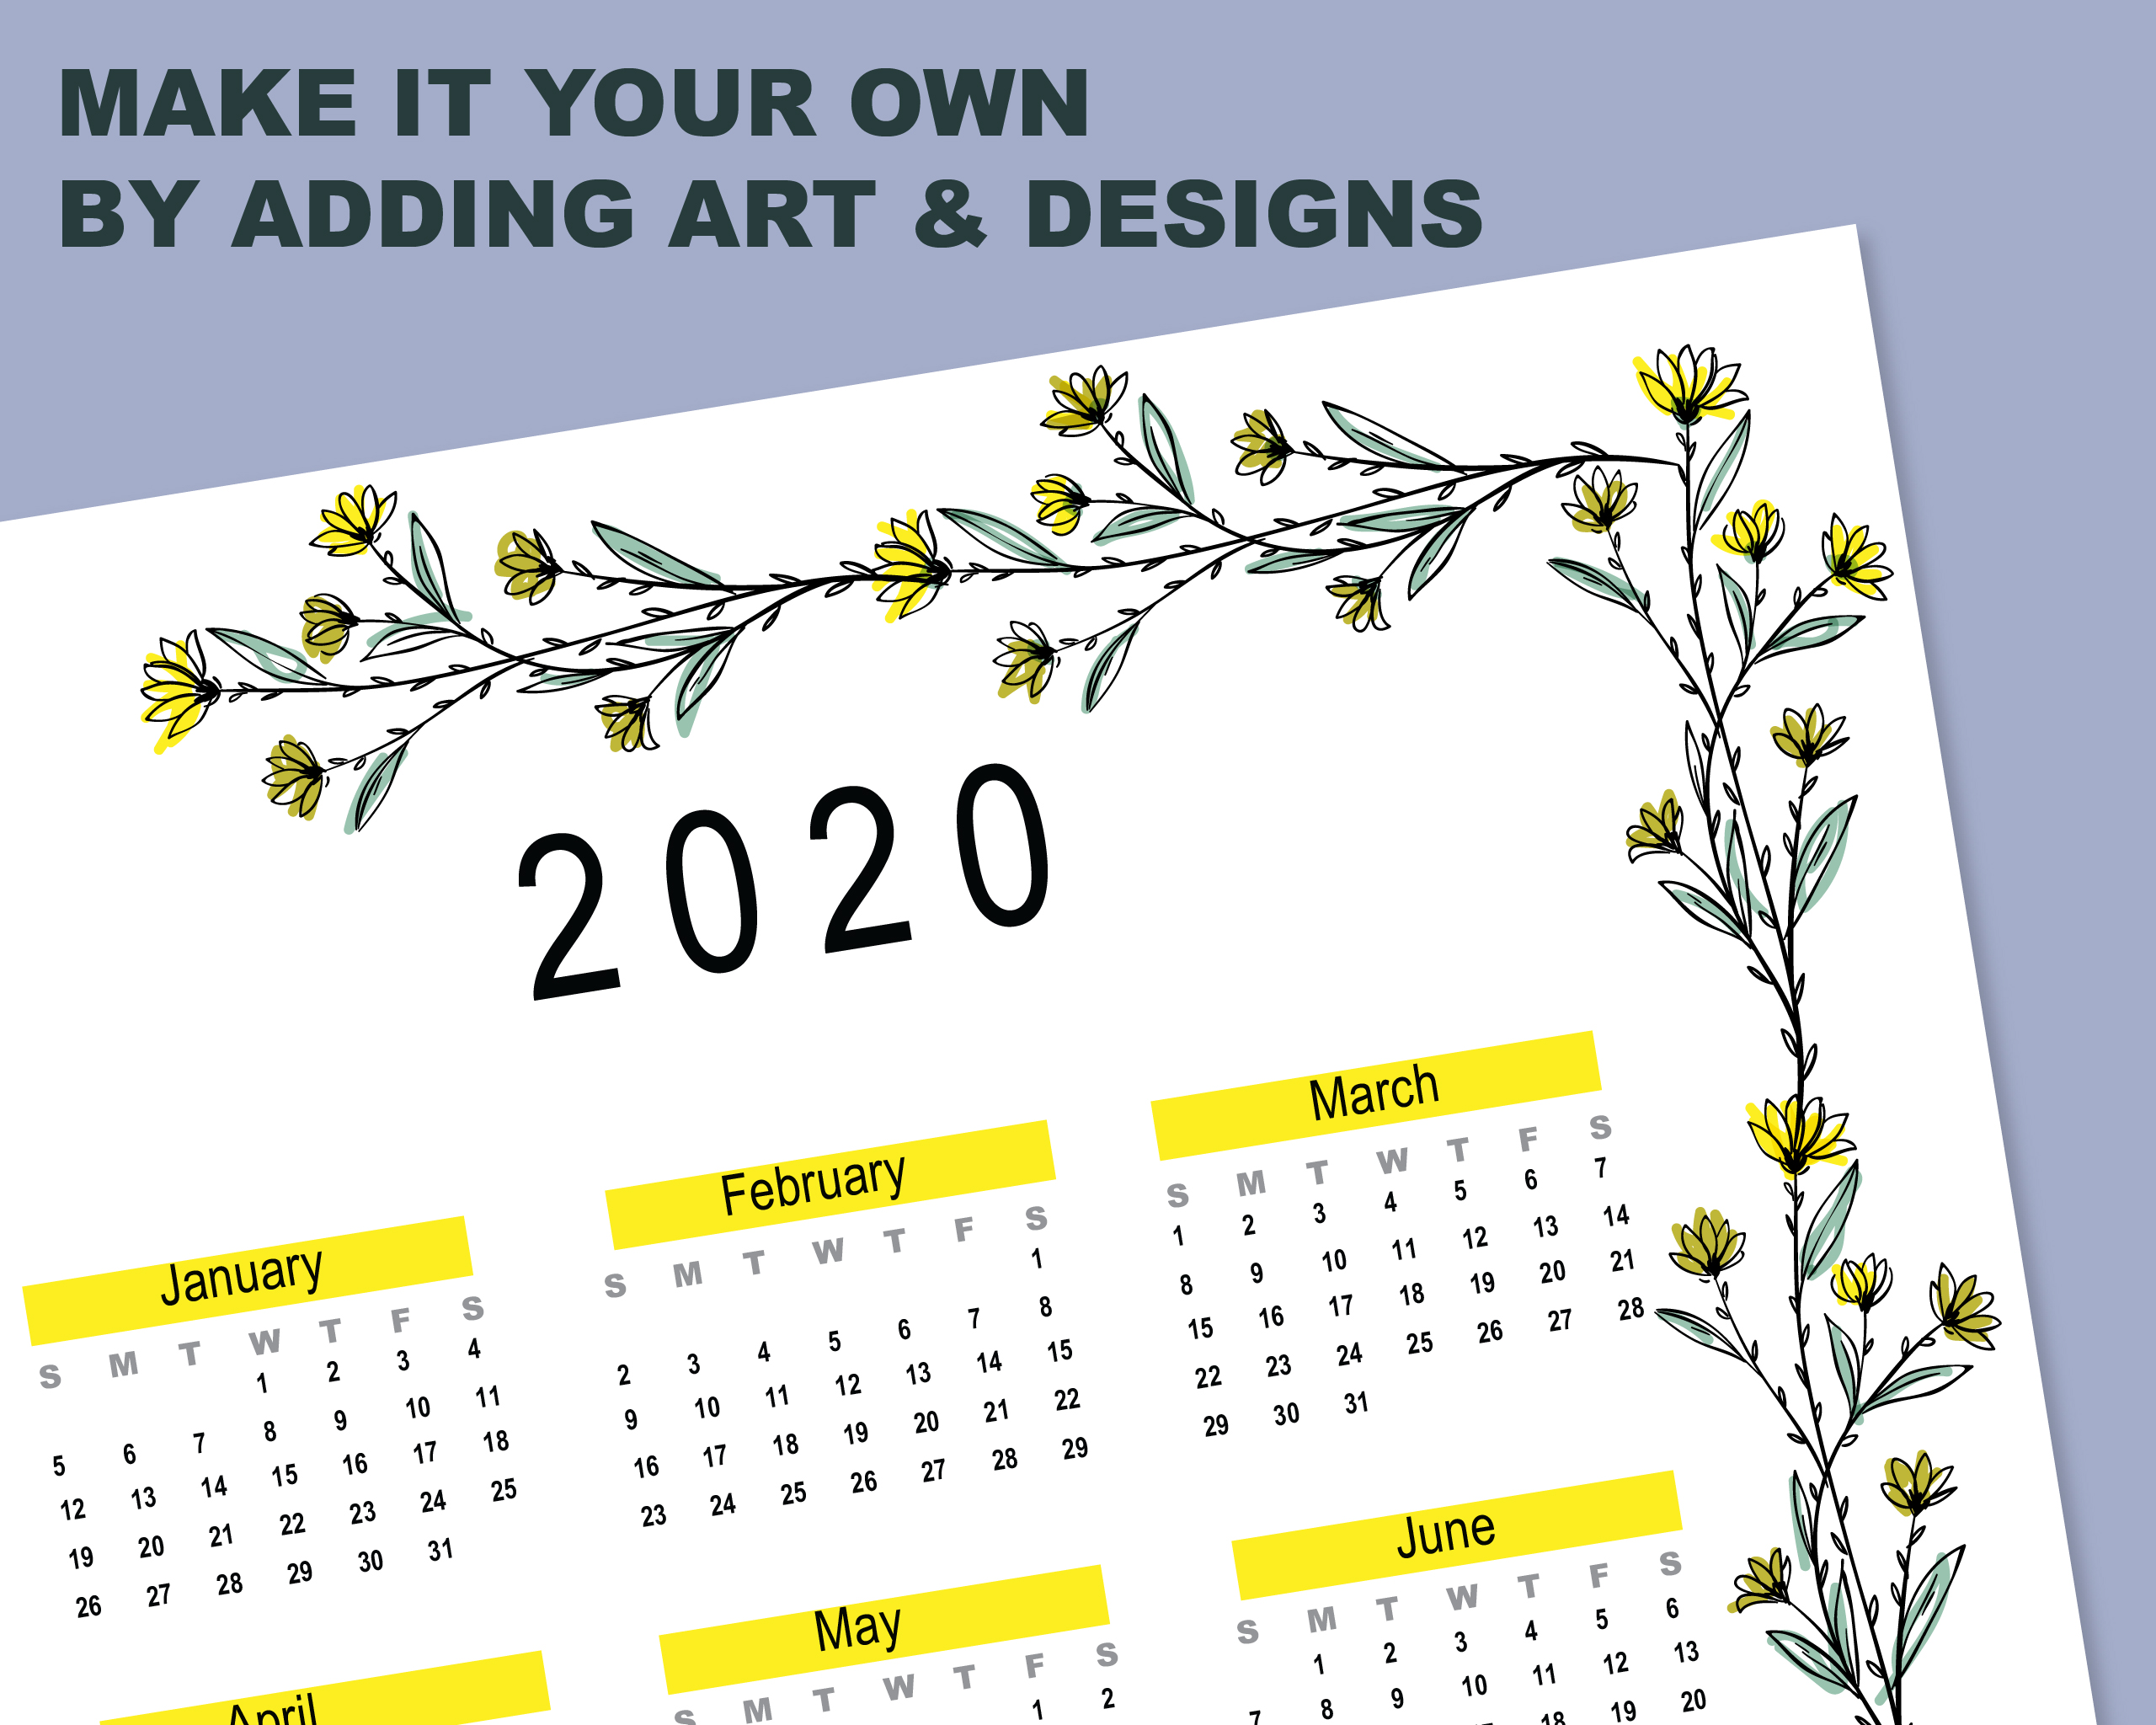 2020 Calendar Template for Commercial Use - PSD, EPS, PDF example image 2